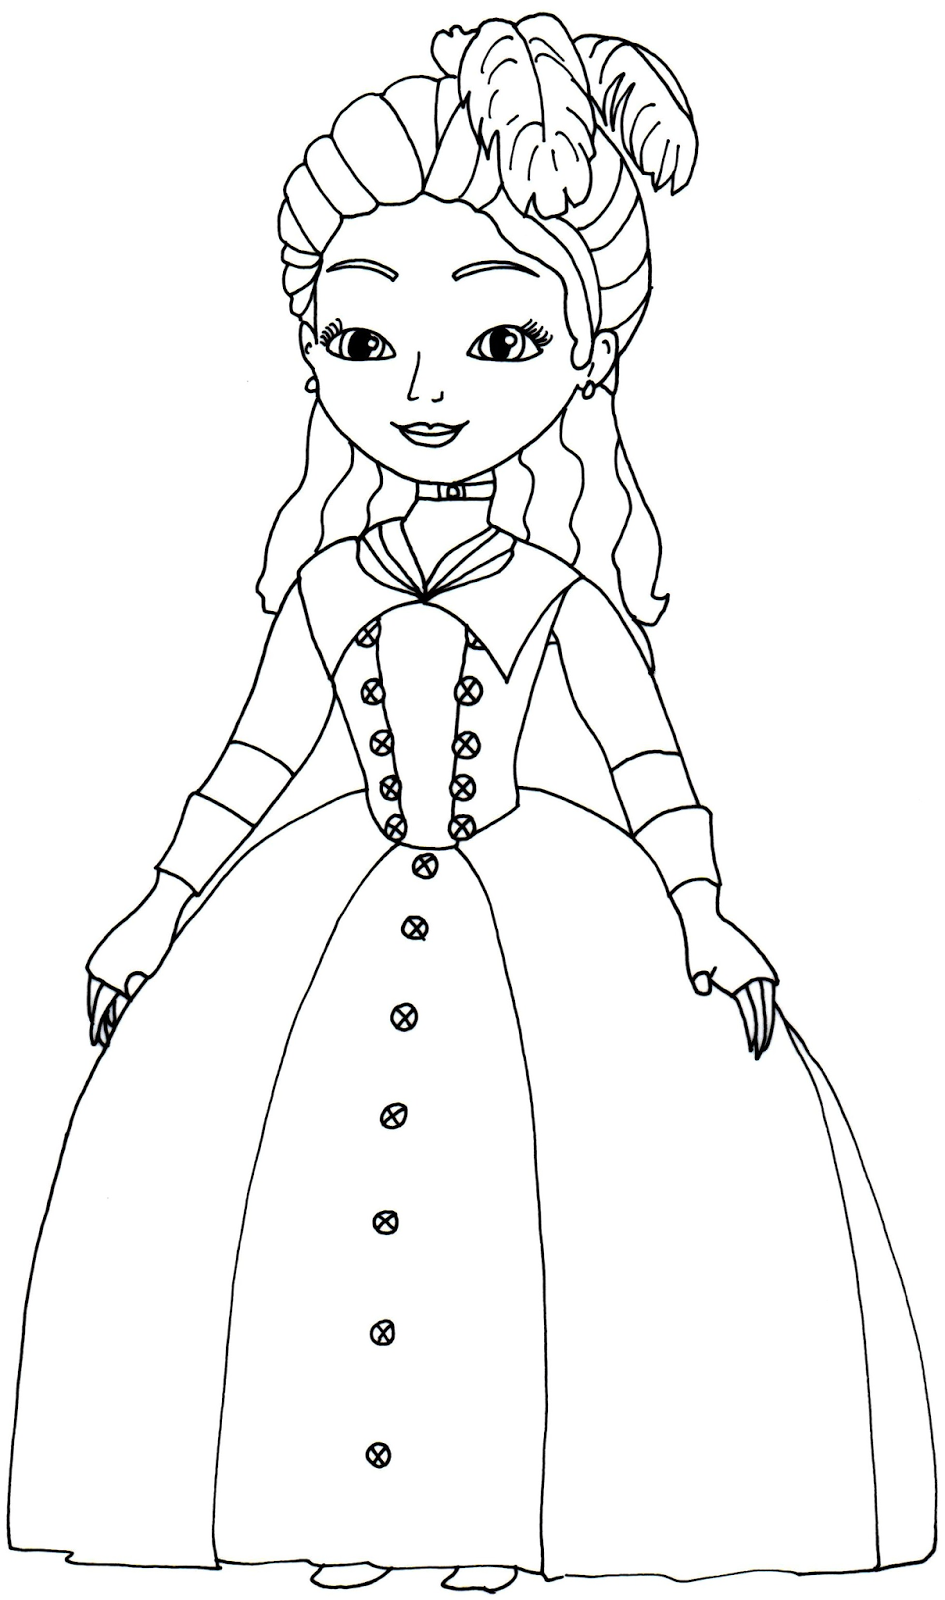 Princess Clio Sofia The First Coloring Page Disney Coloring Pages Printables Princess Coloring Pages Disney Coloring Pages